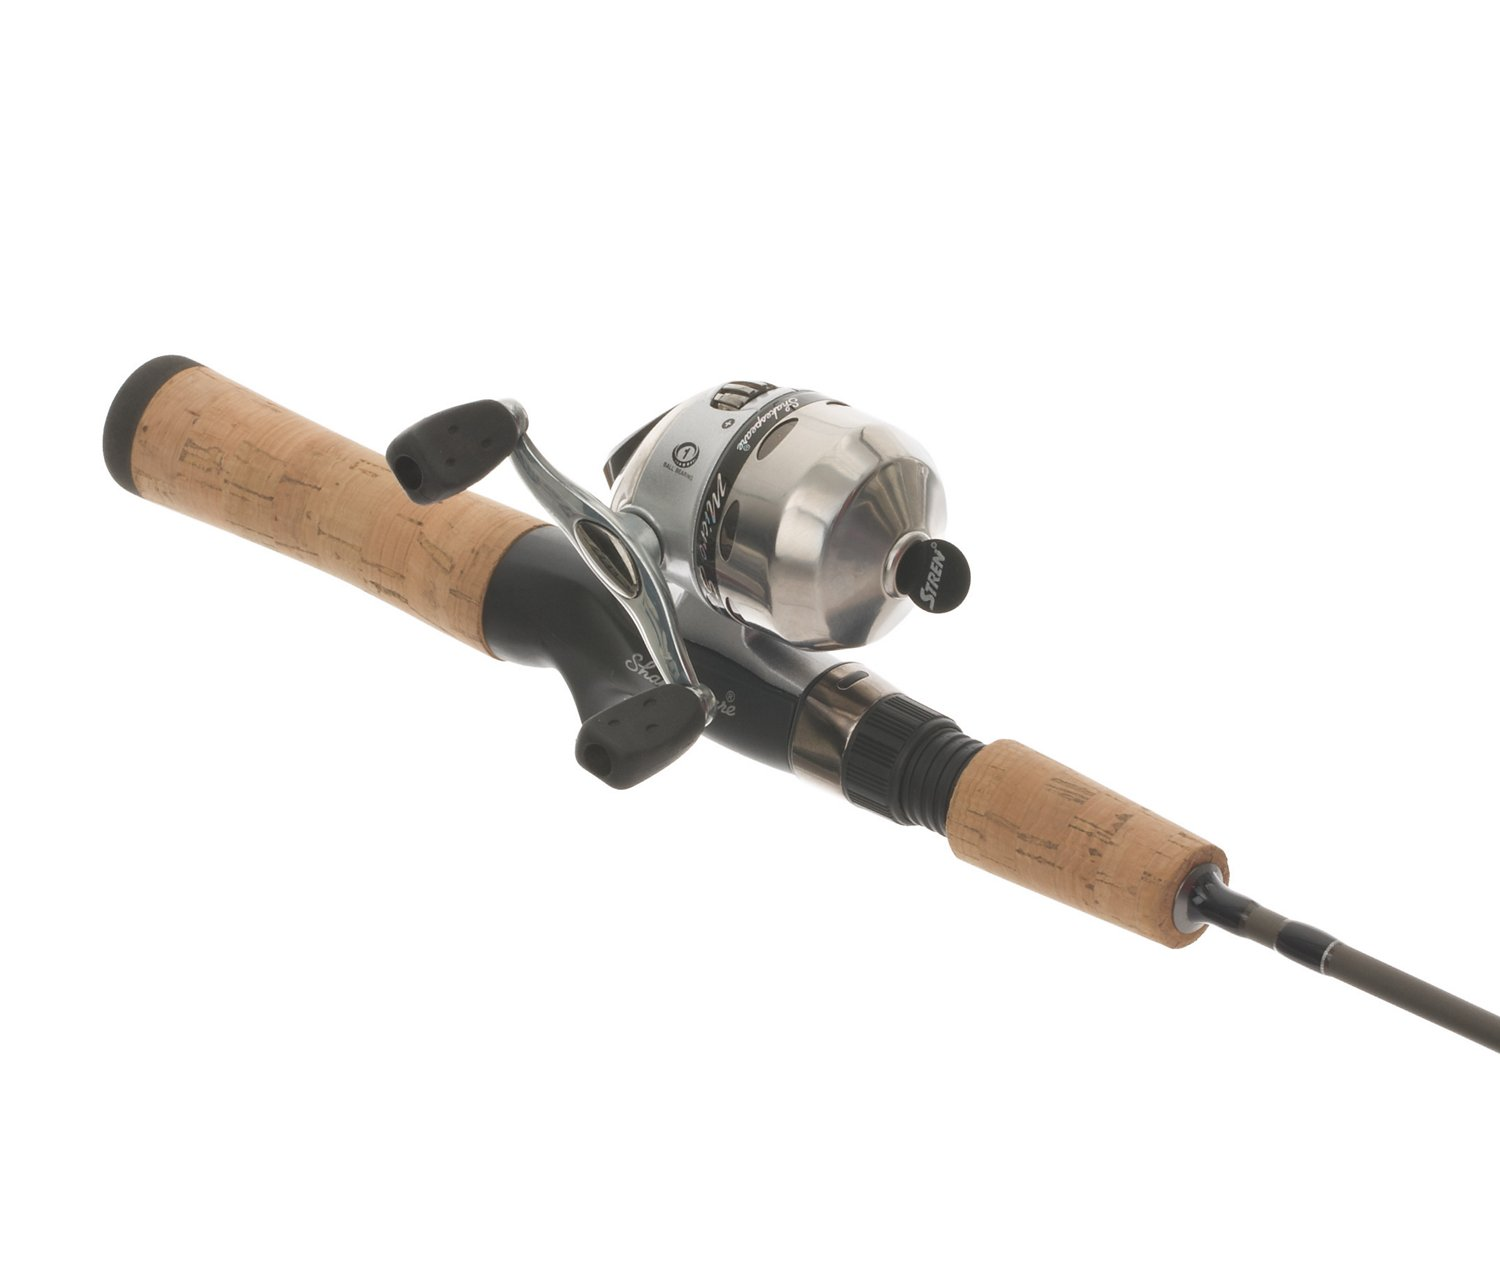 Shakespeare® Microcast 7' UL Freshwater Spincast Rod and Reel Combo - view number 4